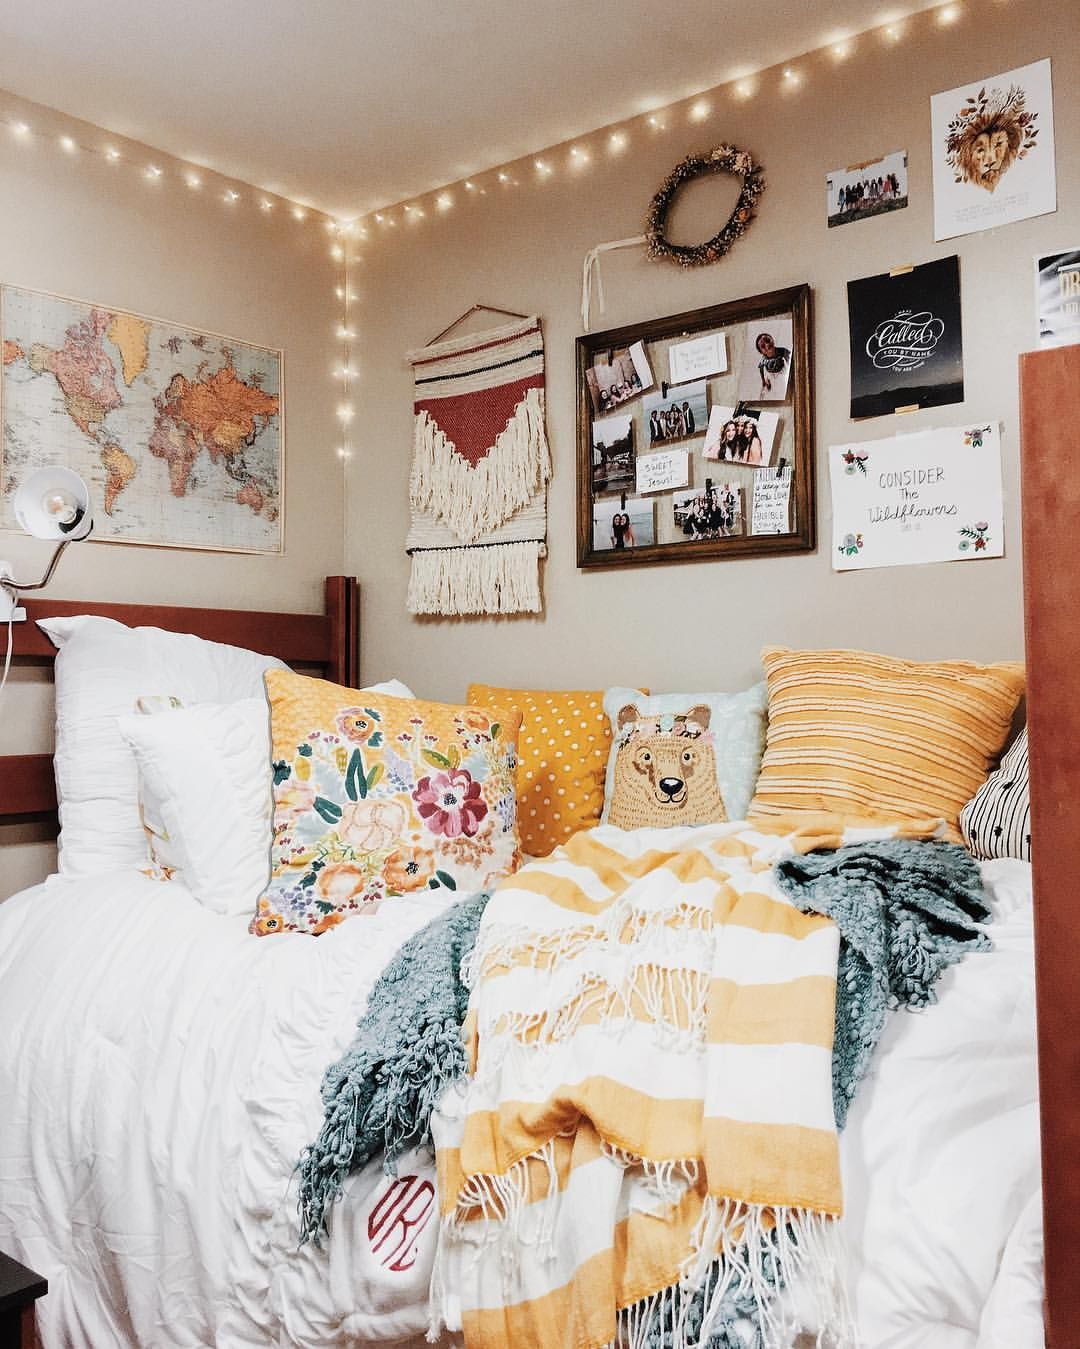 College dorm loft bed ideas   Likes  Comments  Olivia Roop roopthereitis on